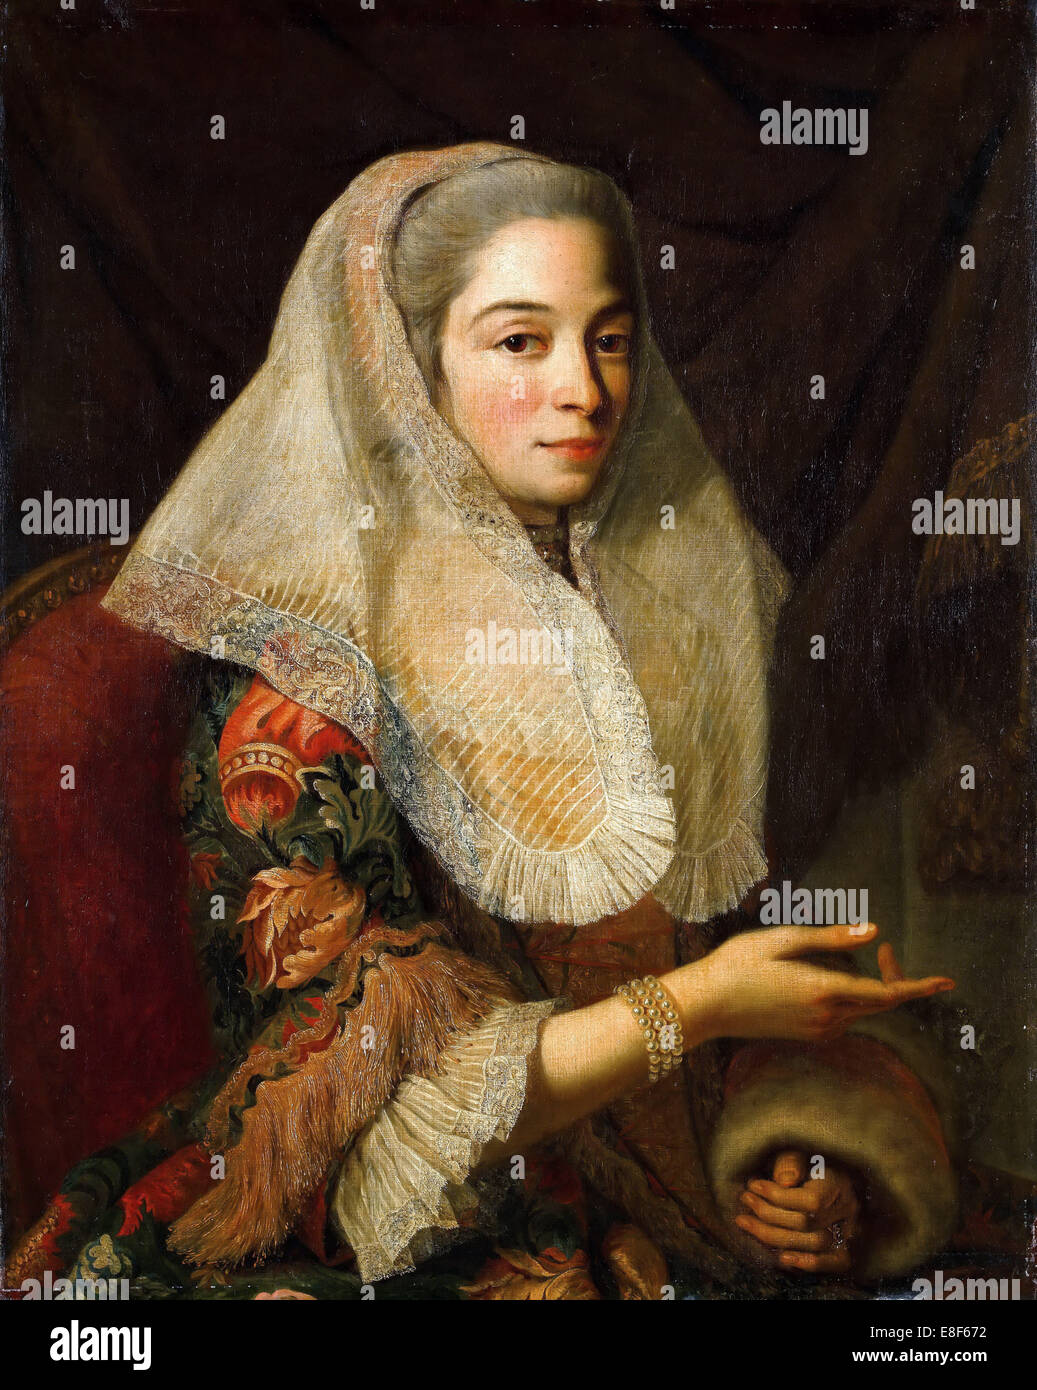 Portrait of a Young Maltese Lady. Artist: Favray, Antoine de (1706-1791) - Stock Image